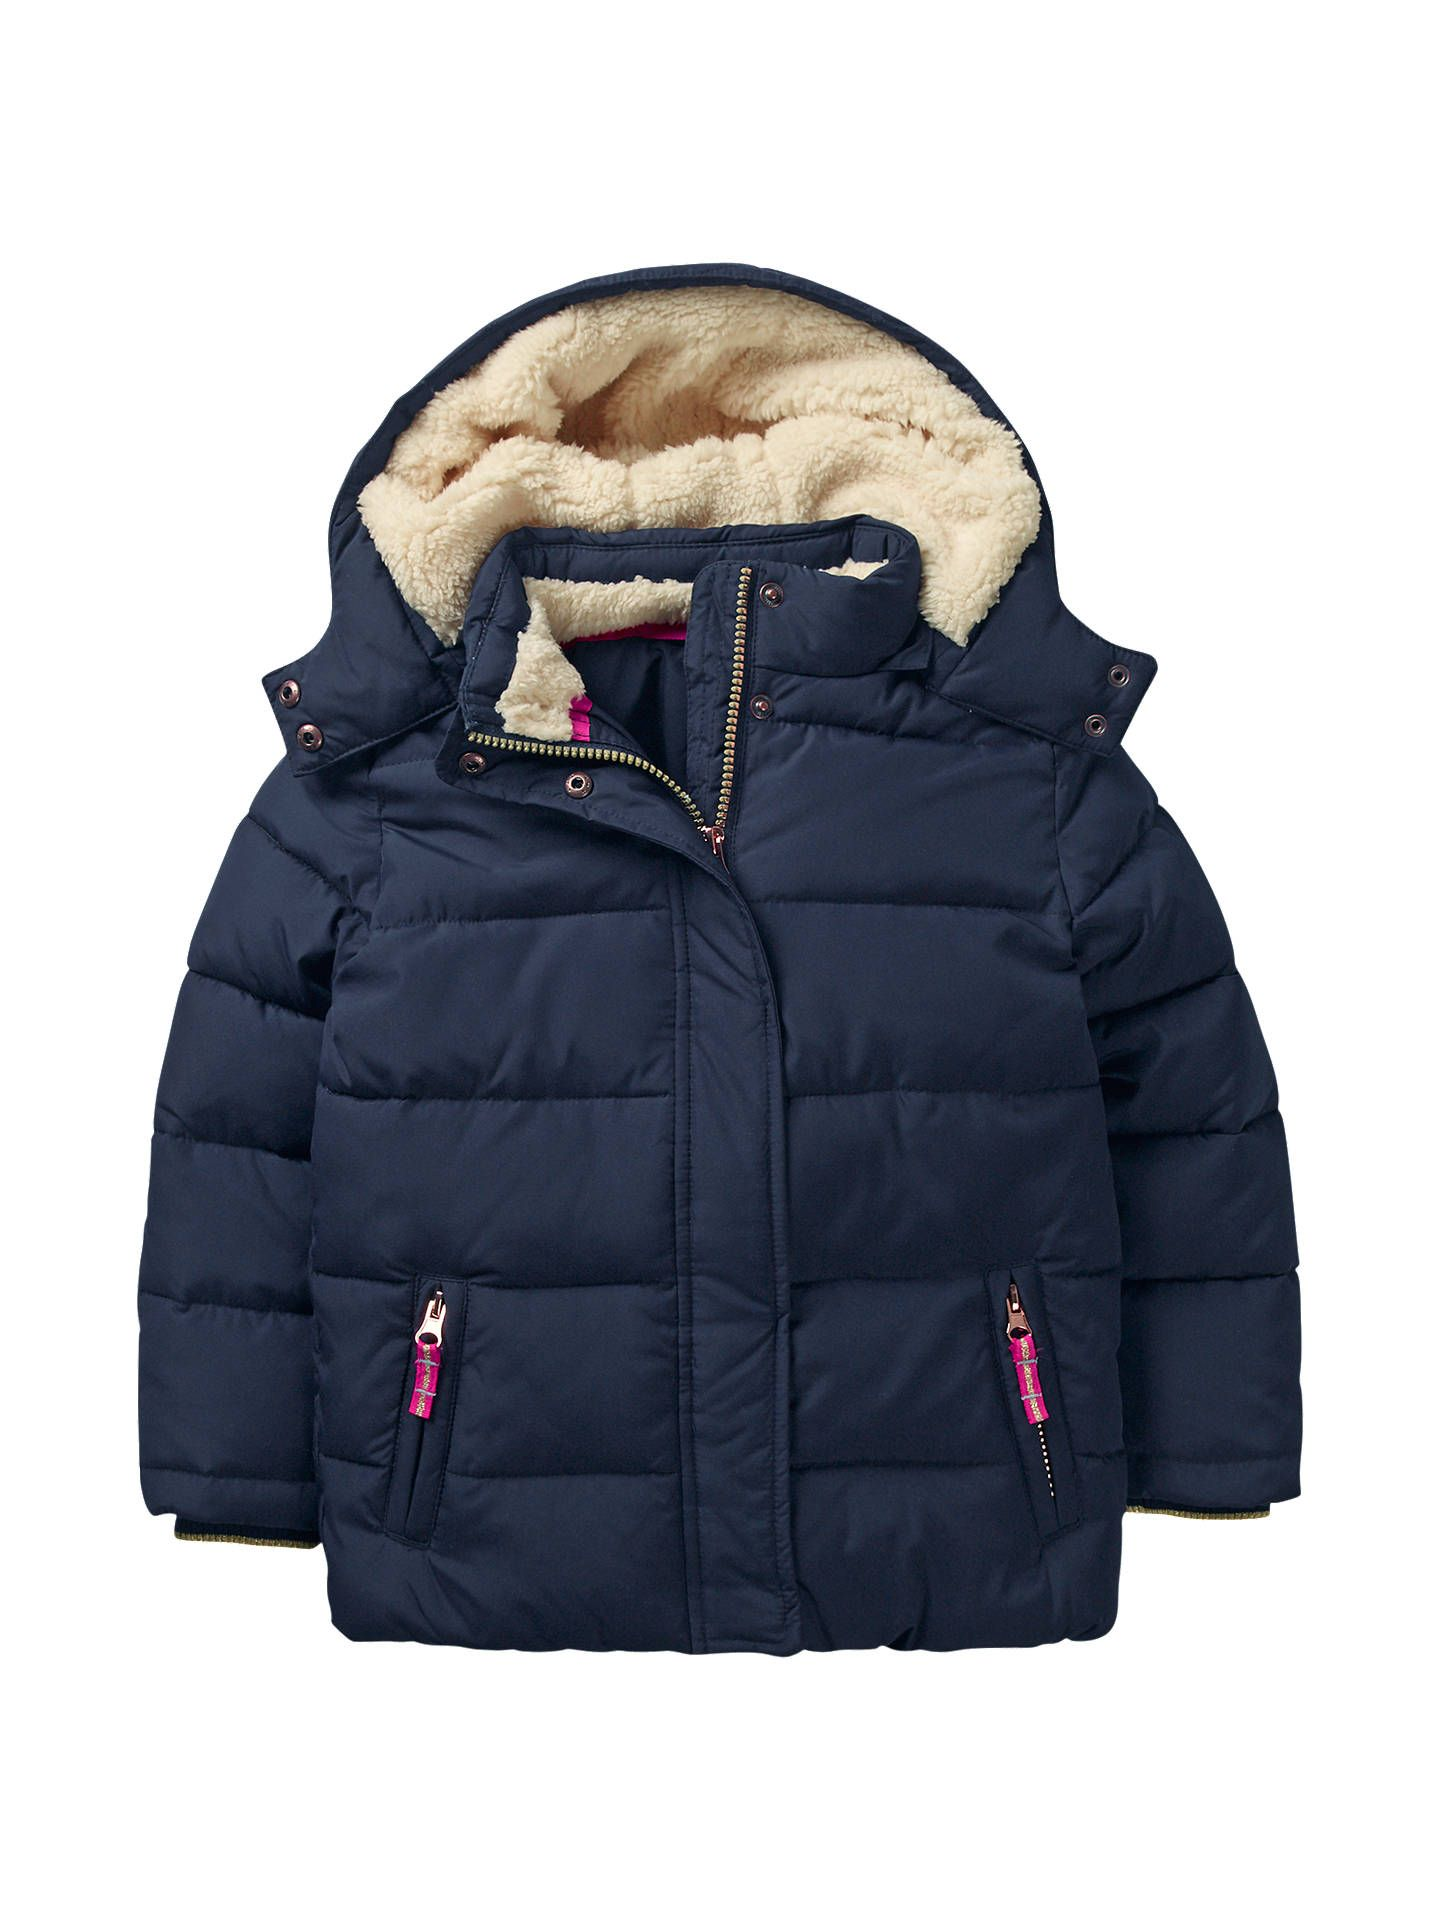 00369c0fccd8 BuyMini Boden Girls  Cosy Padded Jacket